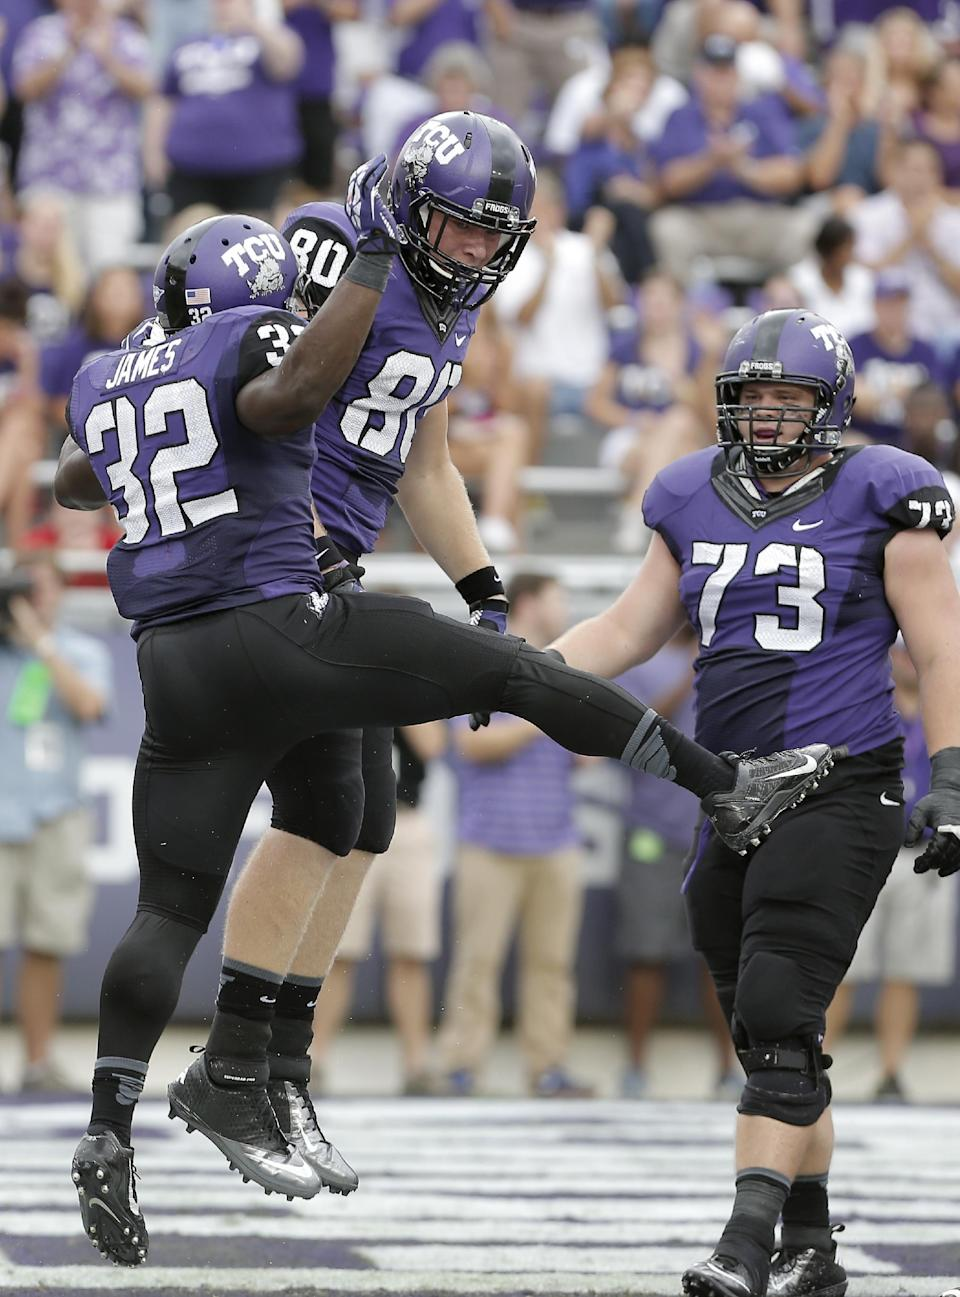 TCU running back Waymon James (32) is congratulated by teammate Buck Jones (80) after scoring a touchdown as Eric Tausch (73) looks on during the first half of an NCAA college football game against SMU Saturday, Sept. 28, 2013, in Fort Worth, Texas. (AP Photo/Brandon Wade)